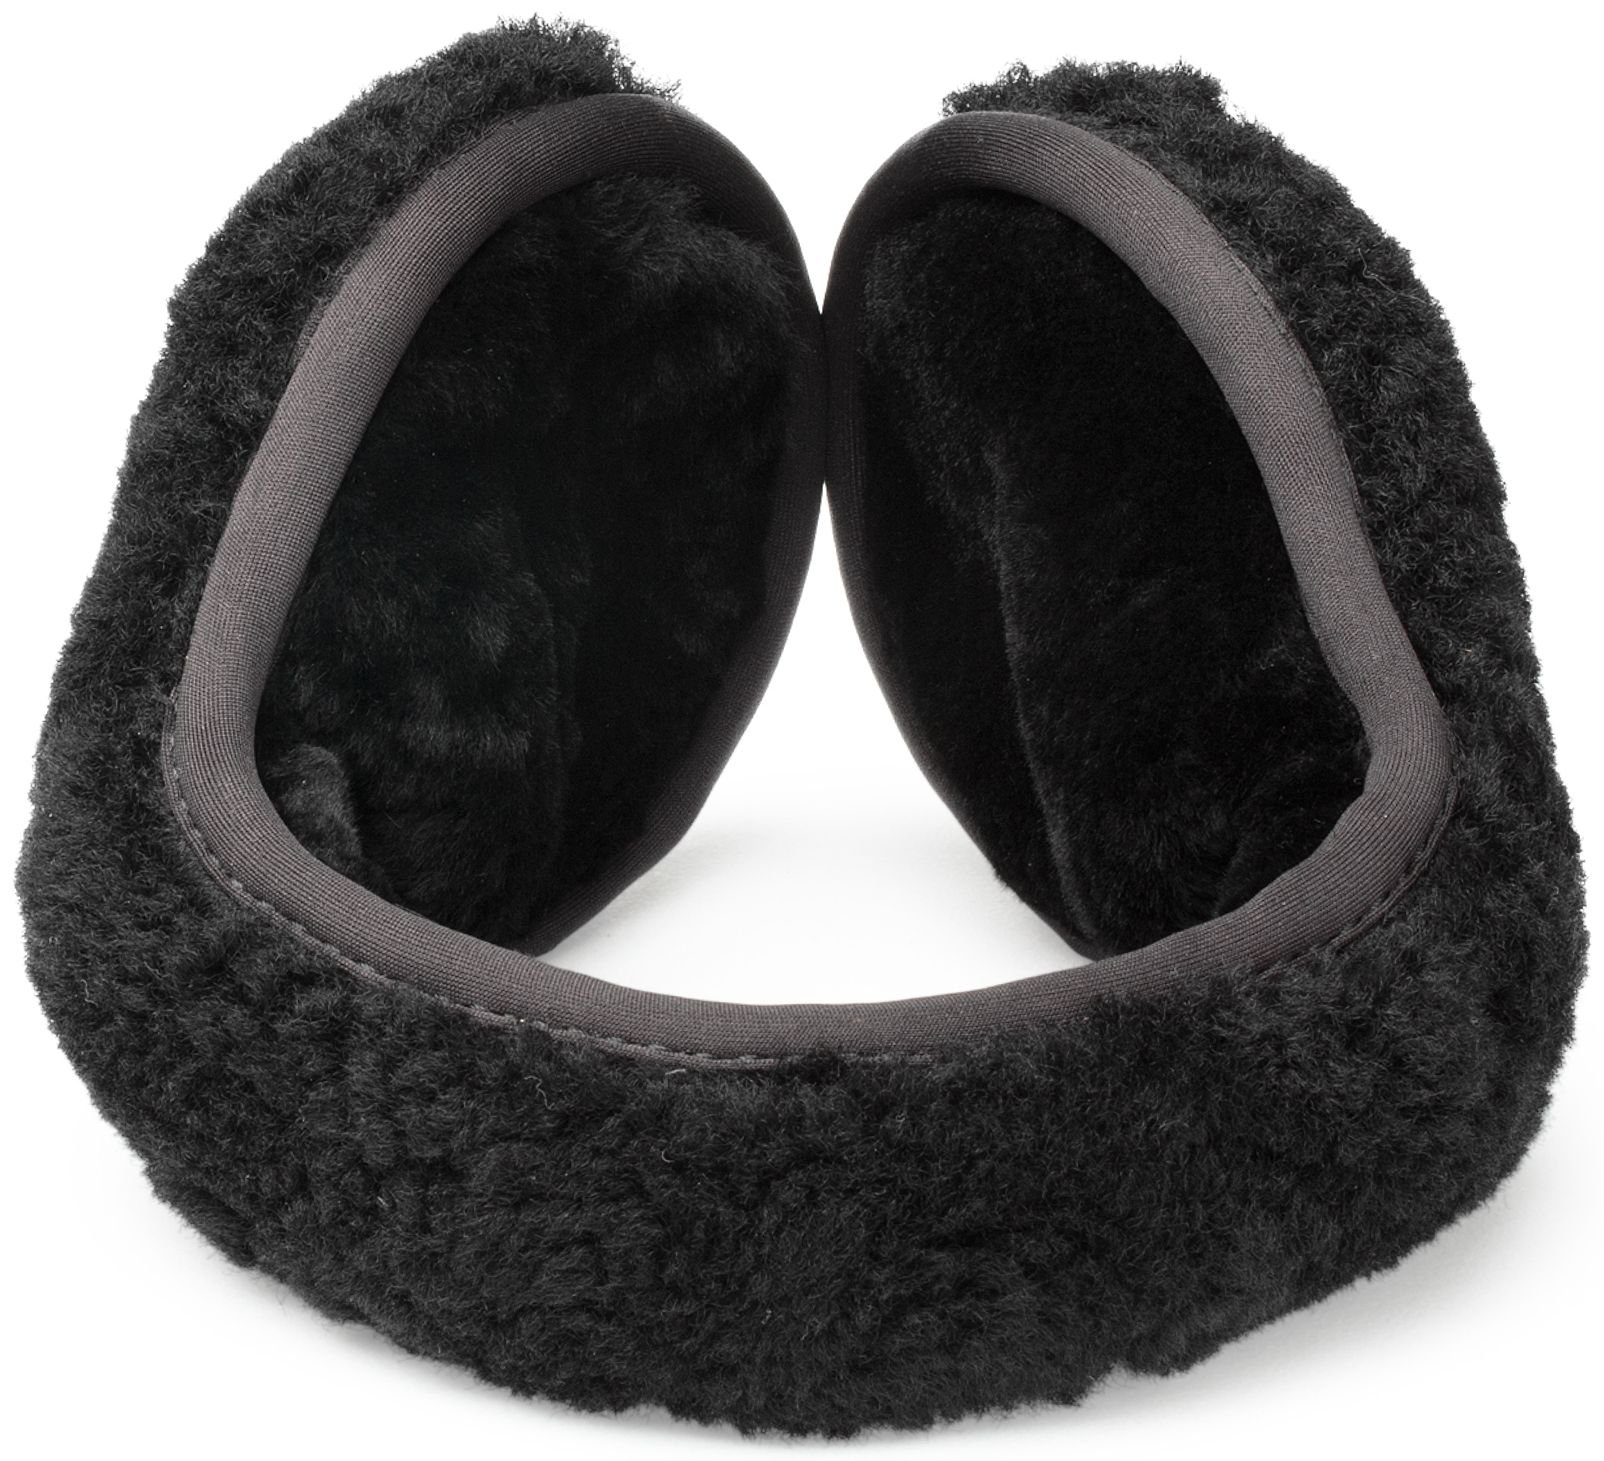 UGG Womens Curly Wrap Around Earmuff in Black Curly by UGG